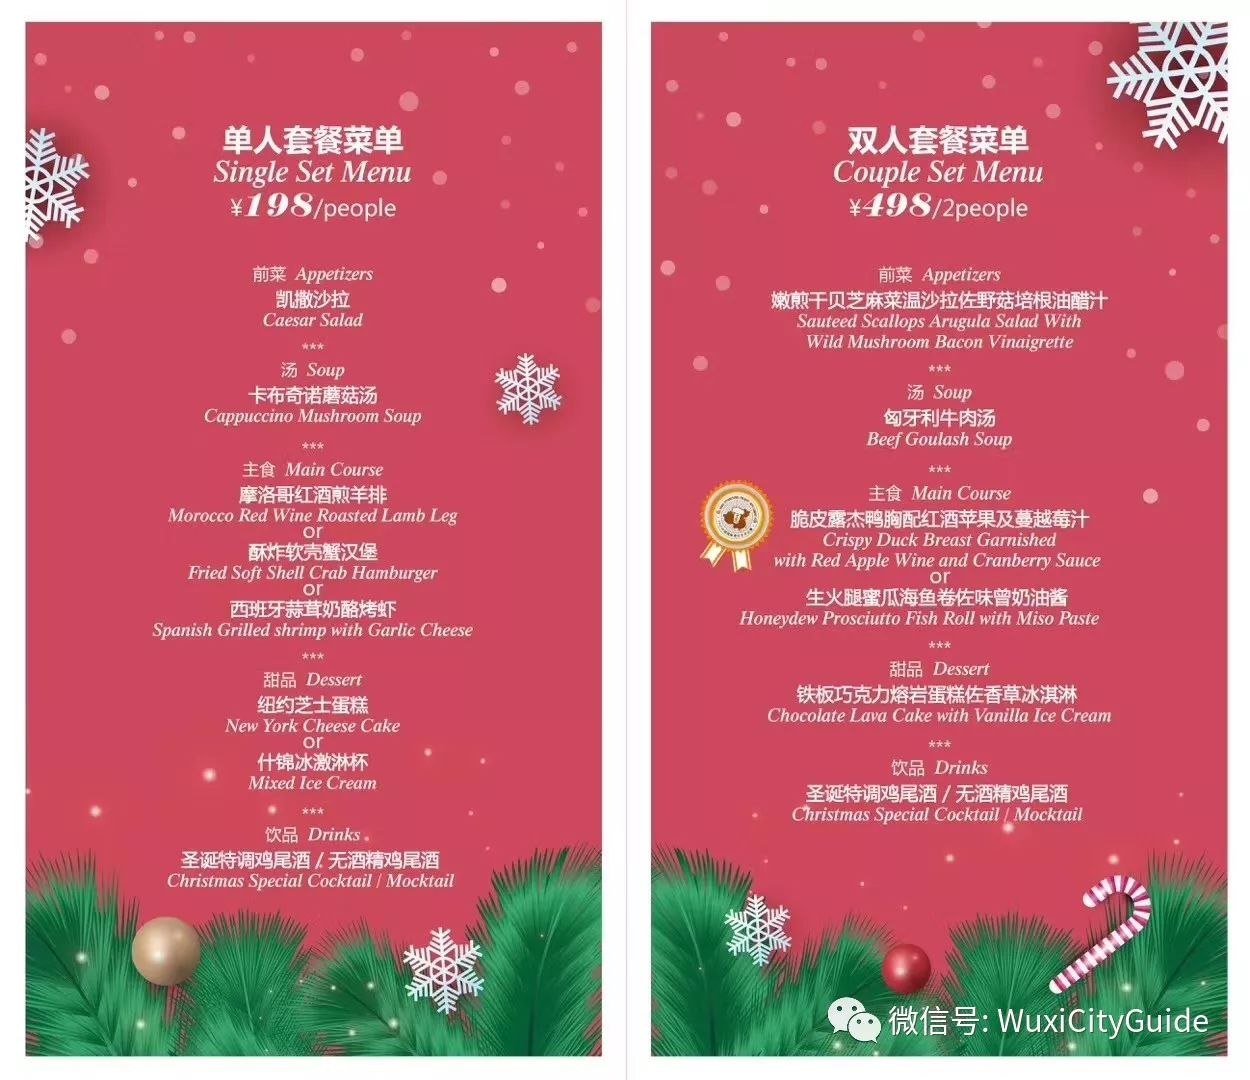 Blue Marlin Christmas Menu 2